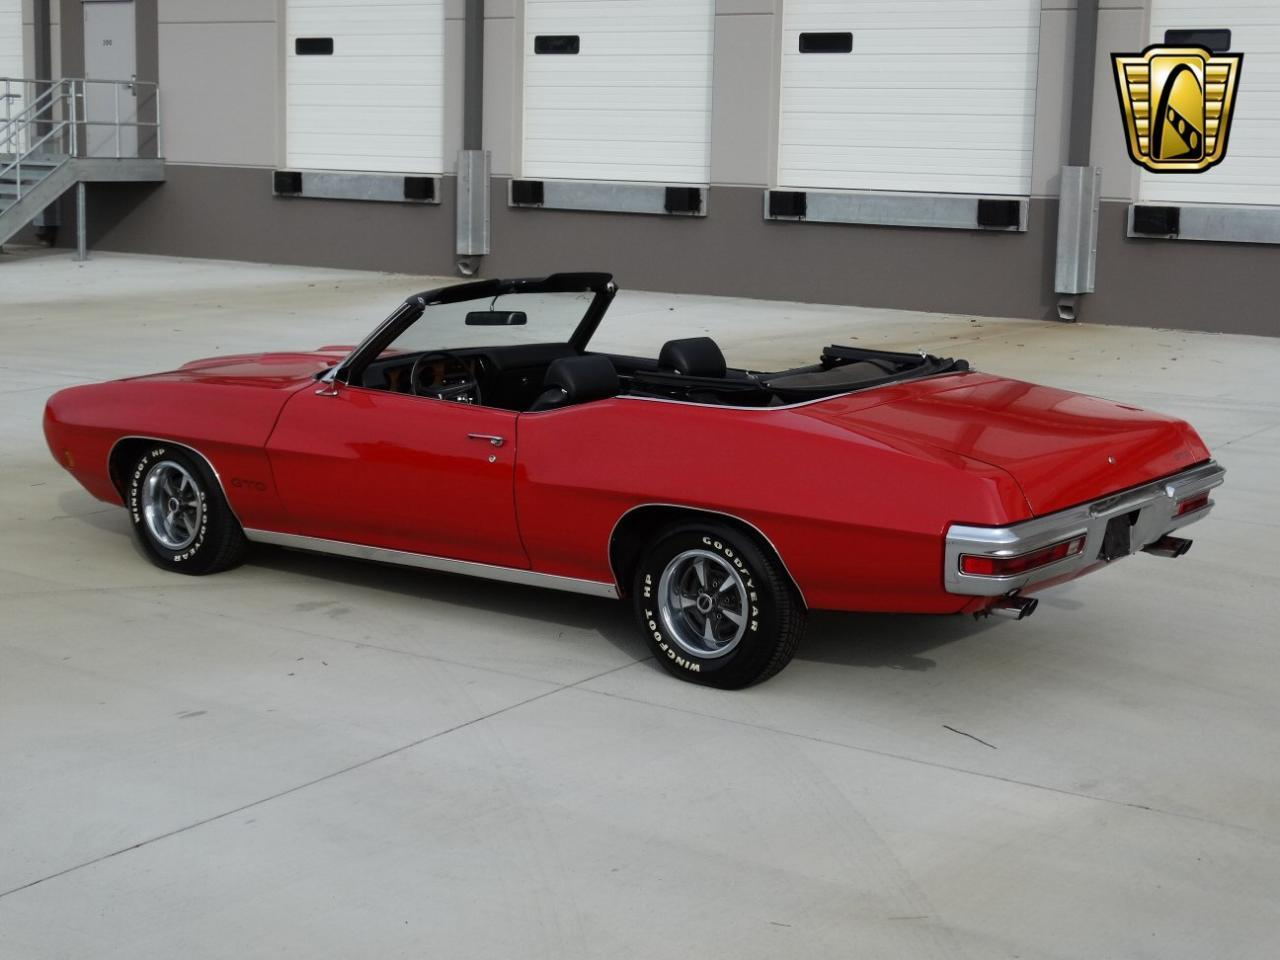 Large Picture of 1970 Pontiac GTO located in Georgia - $71,000.00 - KF5T